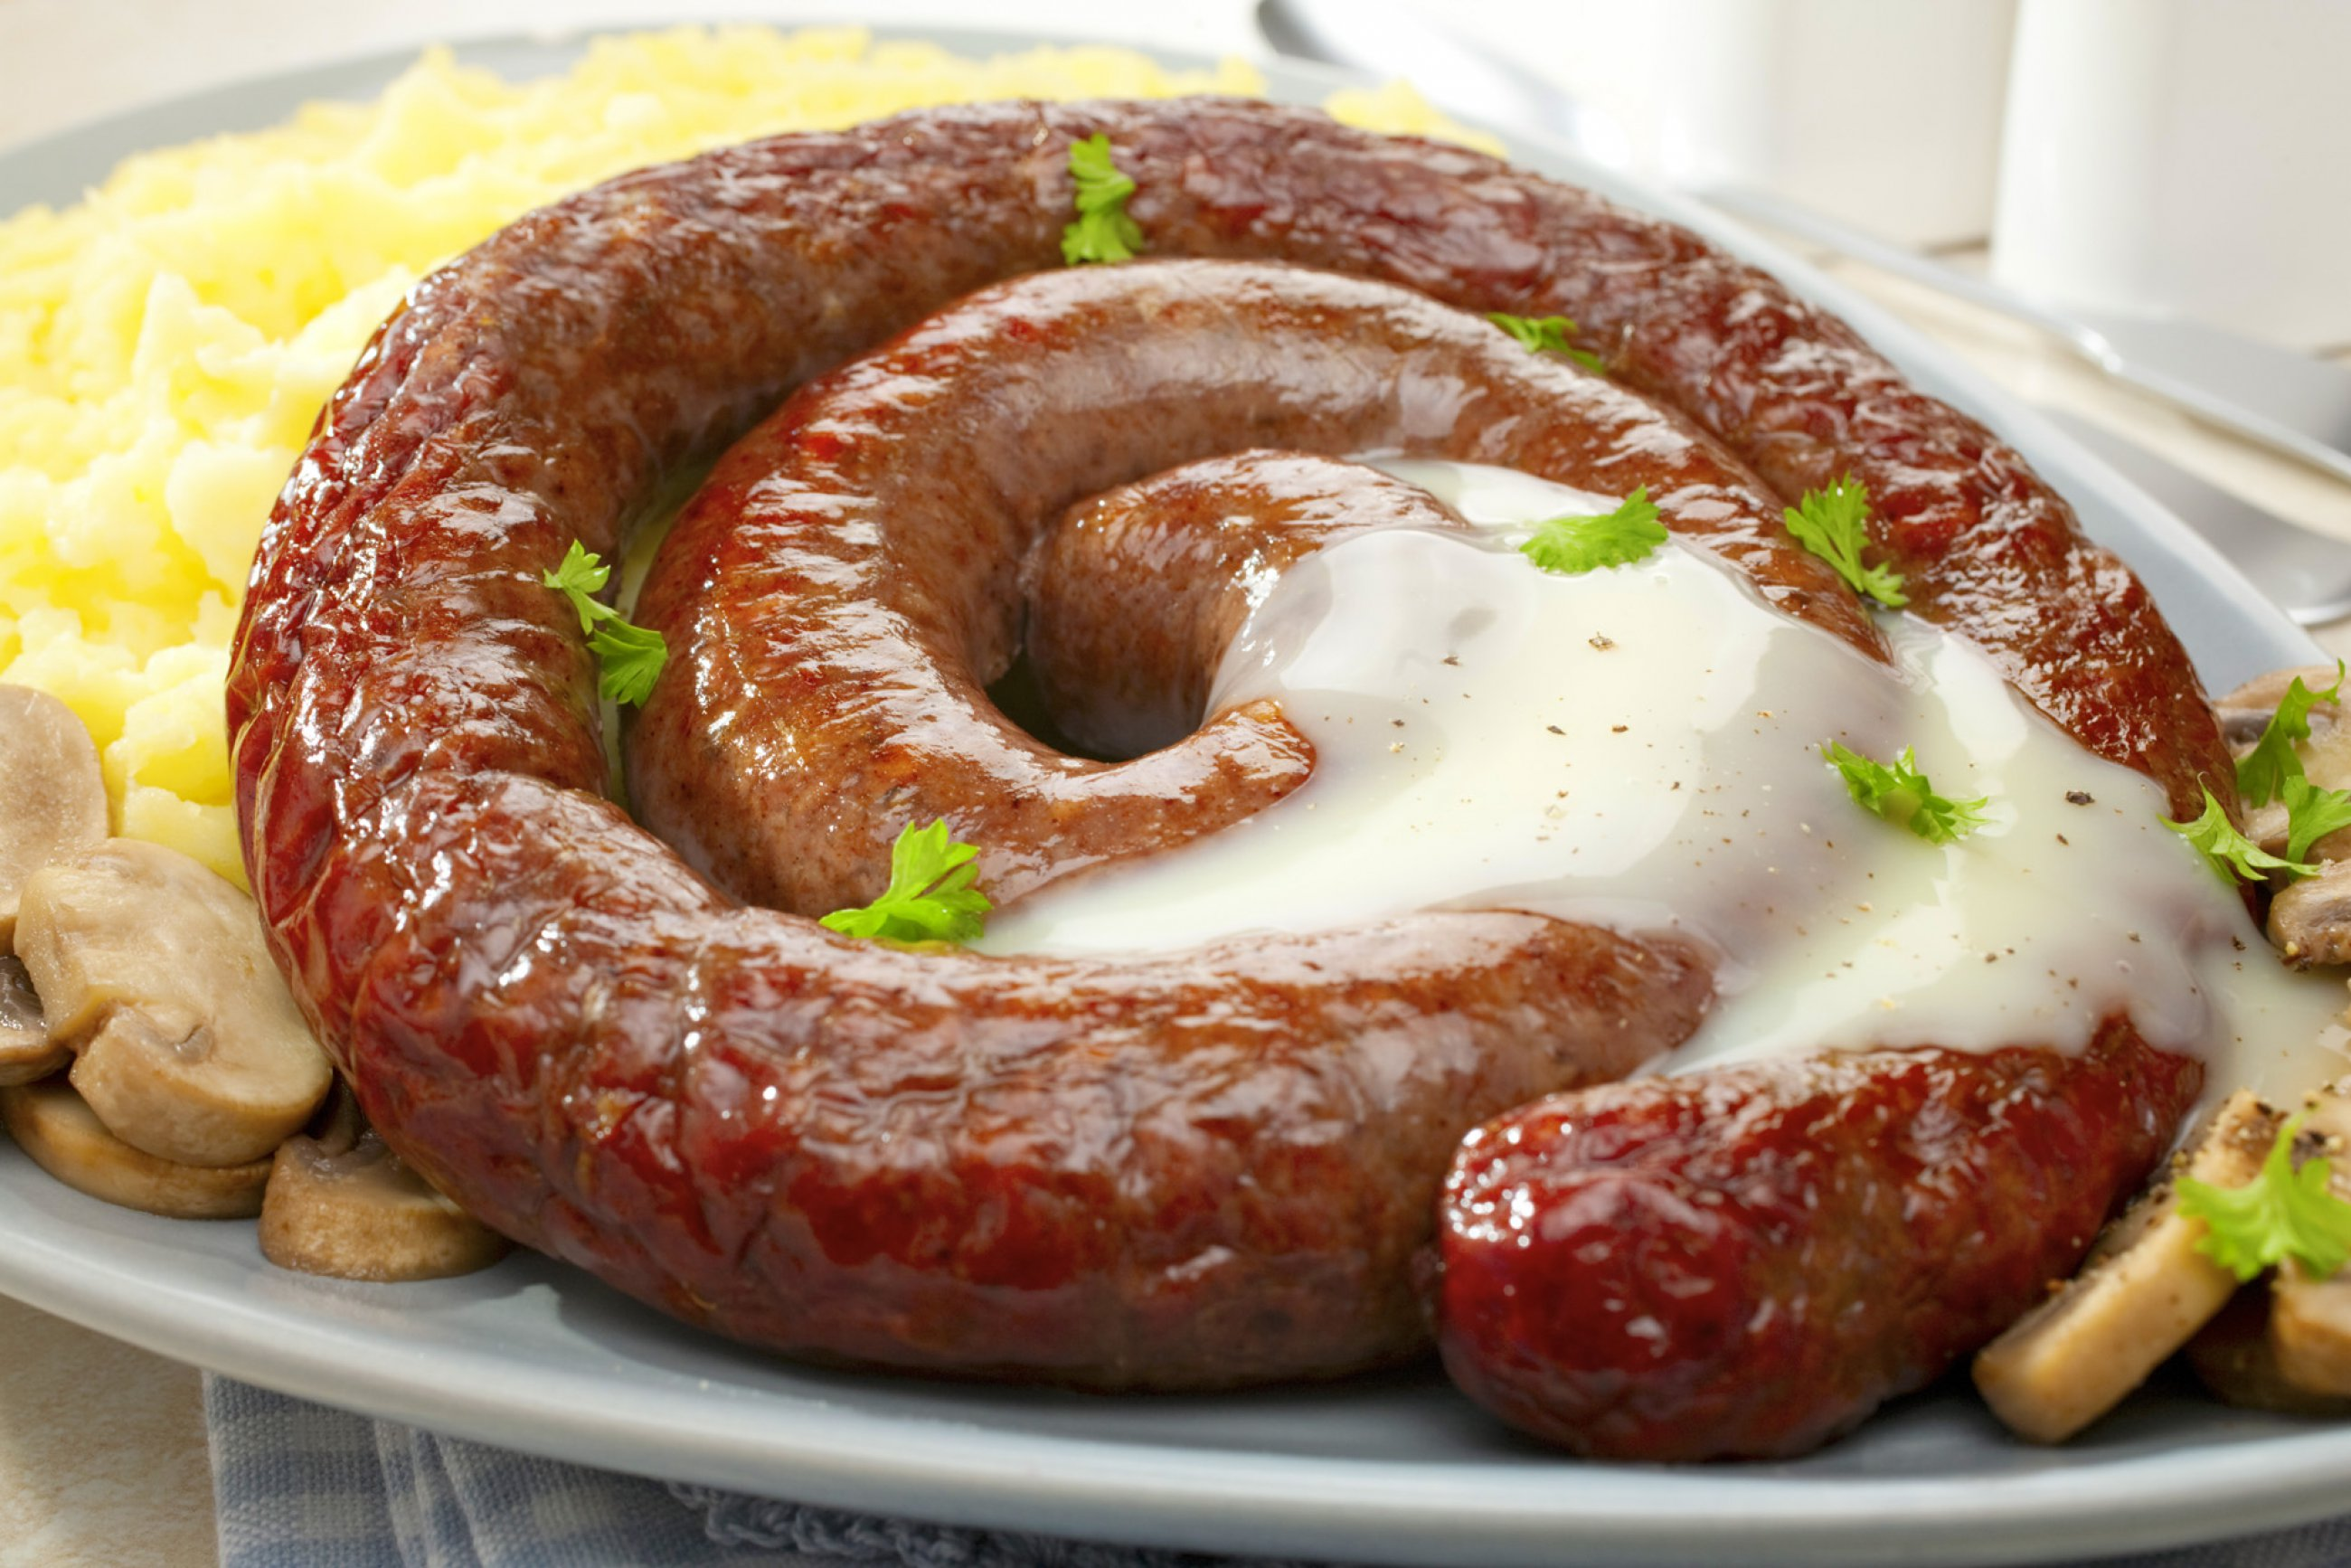 https://bubo.sk/uploads/galleries/4972/jar-south-african-sausage-spiral-boerewors-grilled-and-served-with-a-creamy-sauce-mushrooms-and-mashed-potatoes.jpg